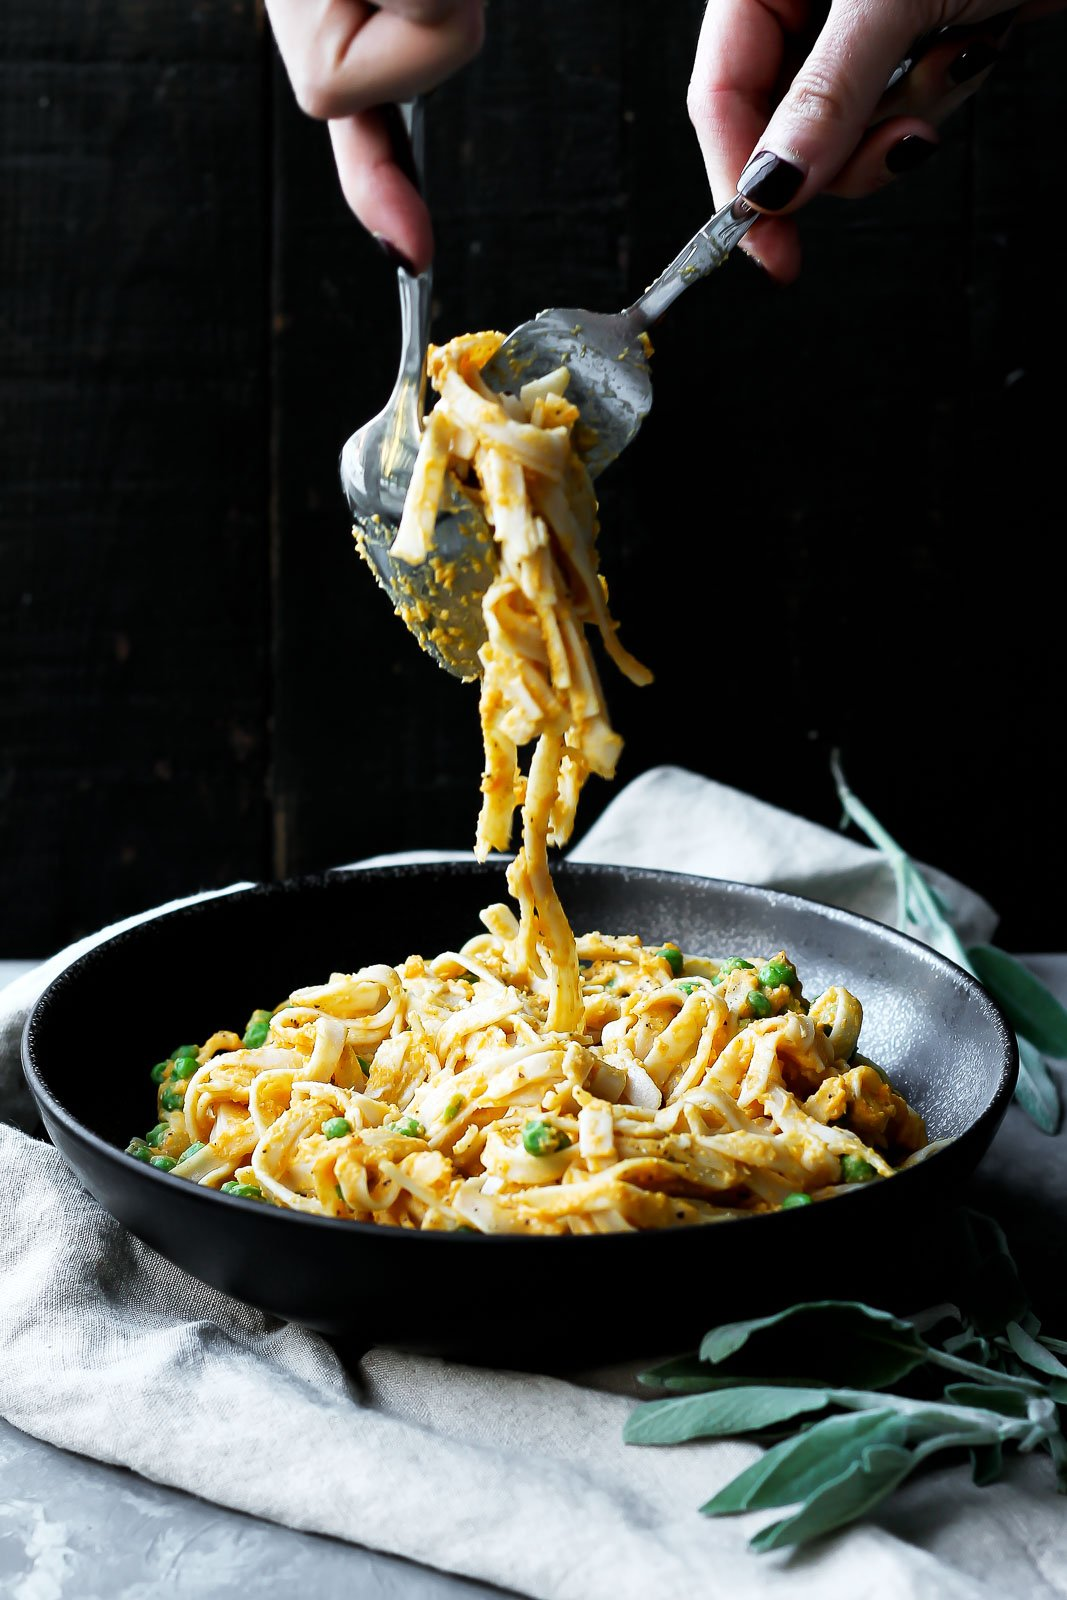 Savory Roasted Butternut Squash Pasta with sweet green peas is the ultimate vegetarian comfort food. The pasta sauce is easy to make and the recipe can easily be vegan and gluten free!